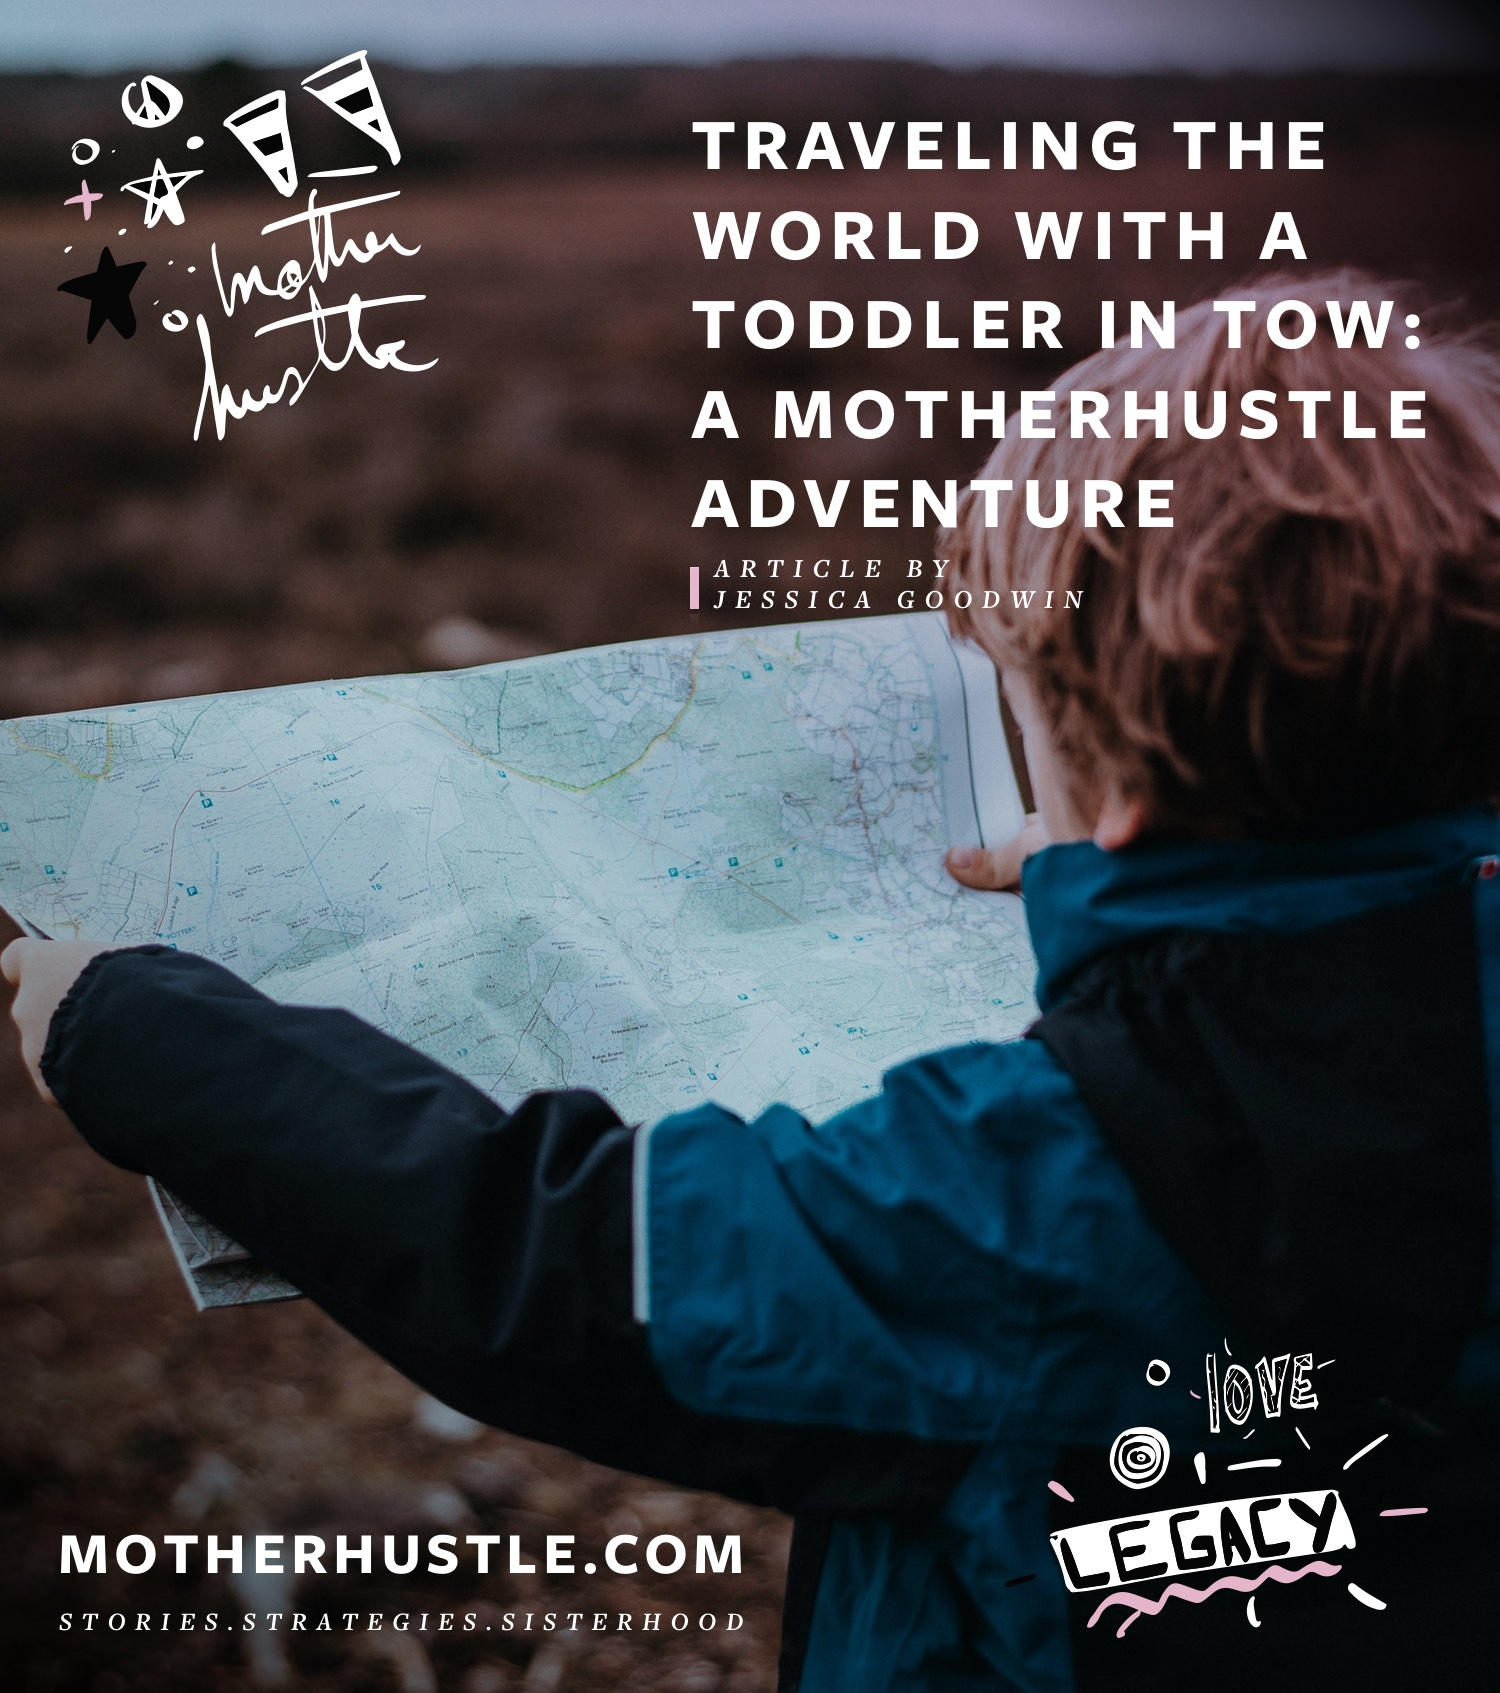 Traveling the World with a Toddler in Tow- A MotherHustle Adventure - by Jessica Goodwin for MotherHustle